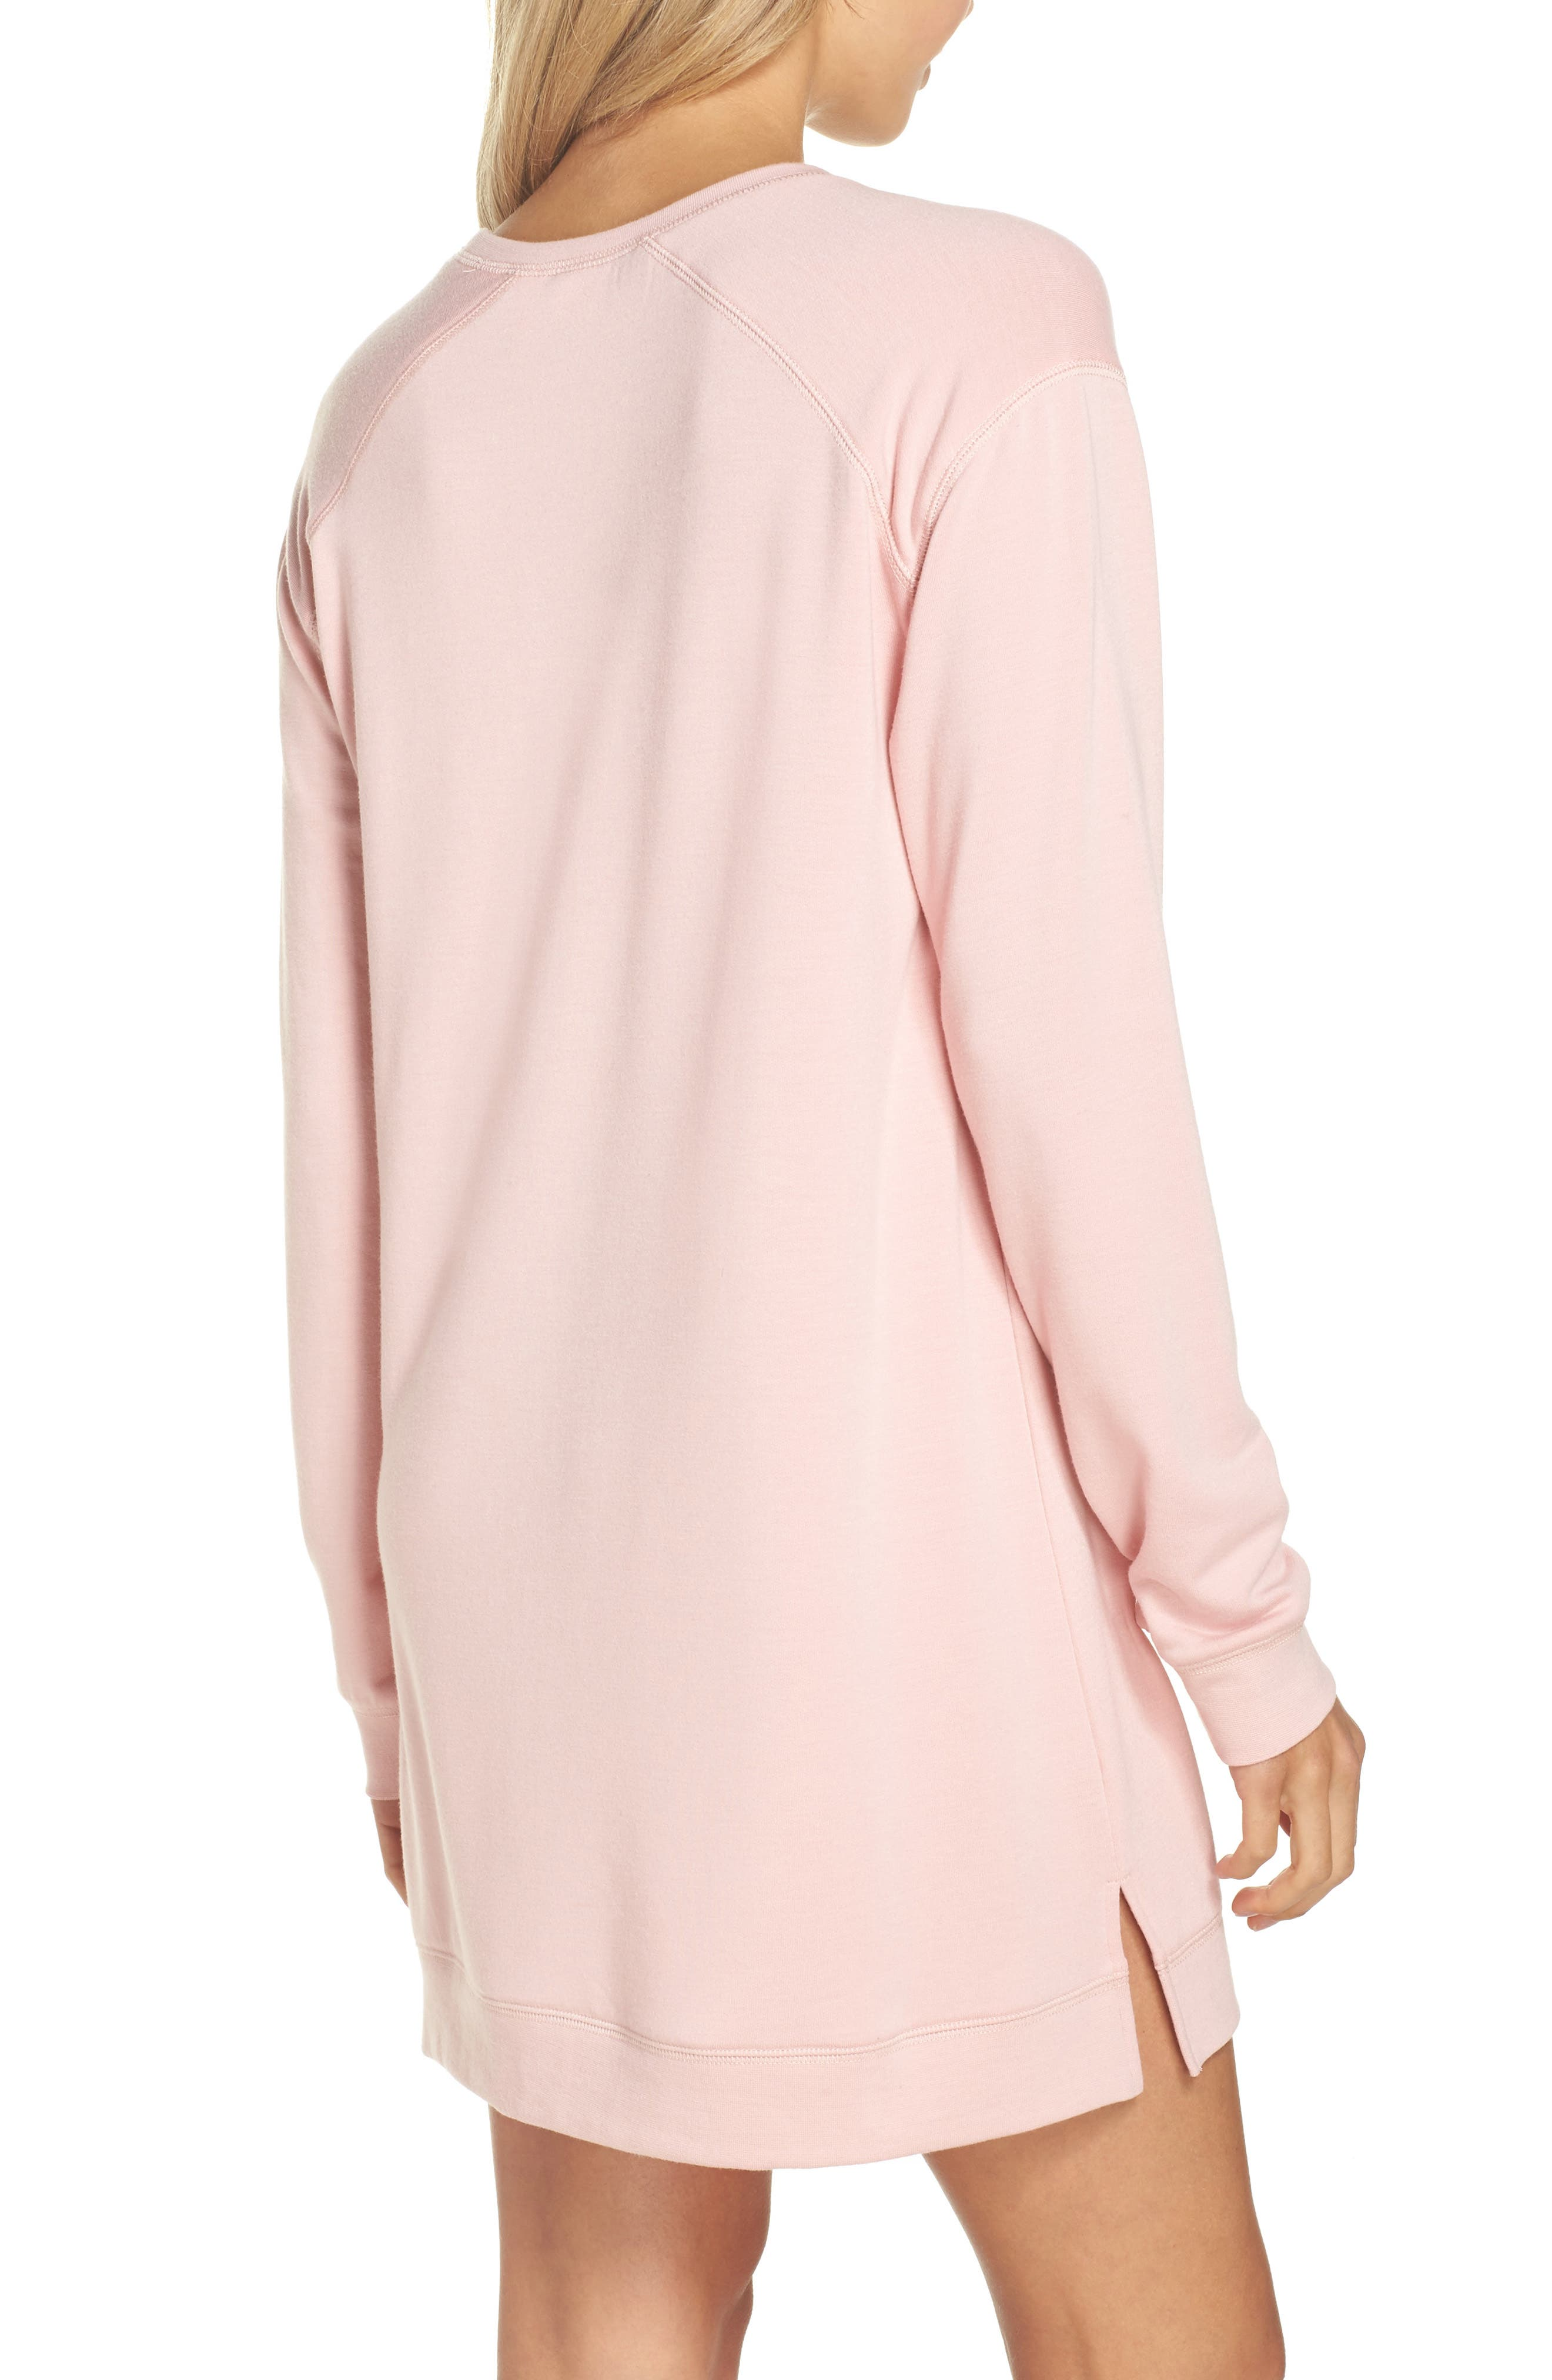 Sleepy Tunic Shirt,                             Alternate thumbnail 6, color,